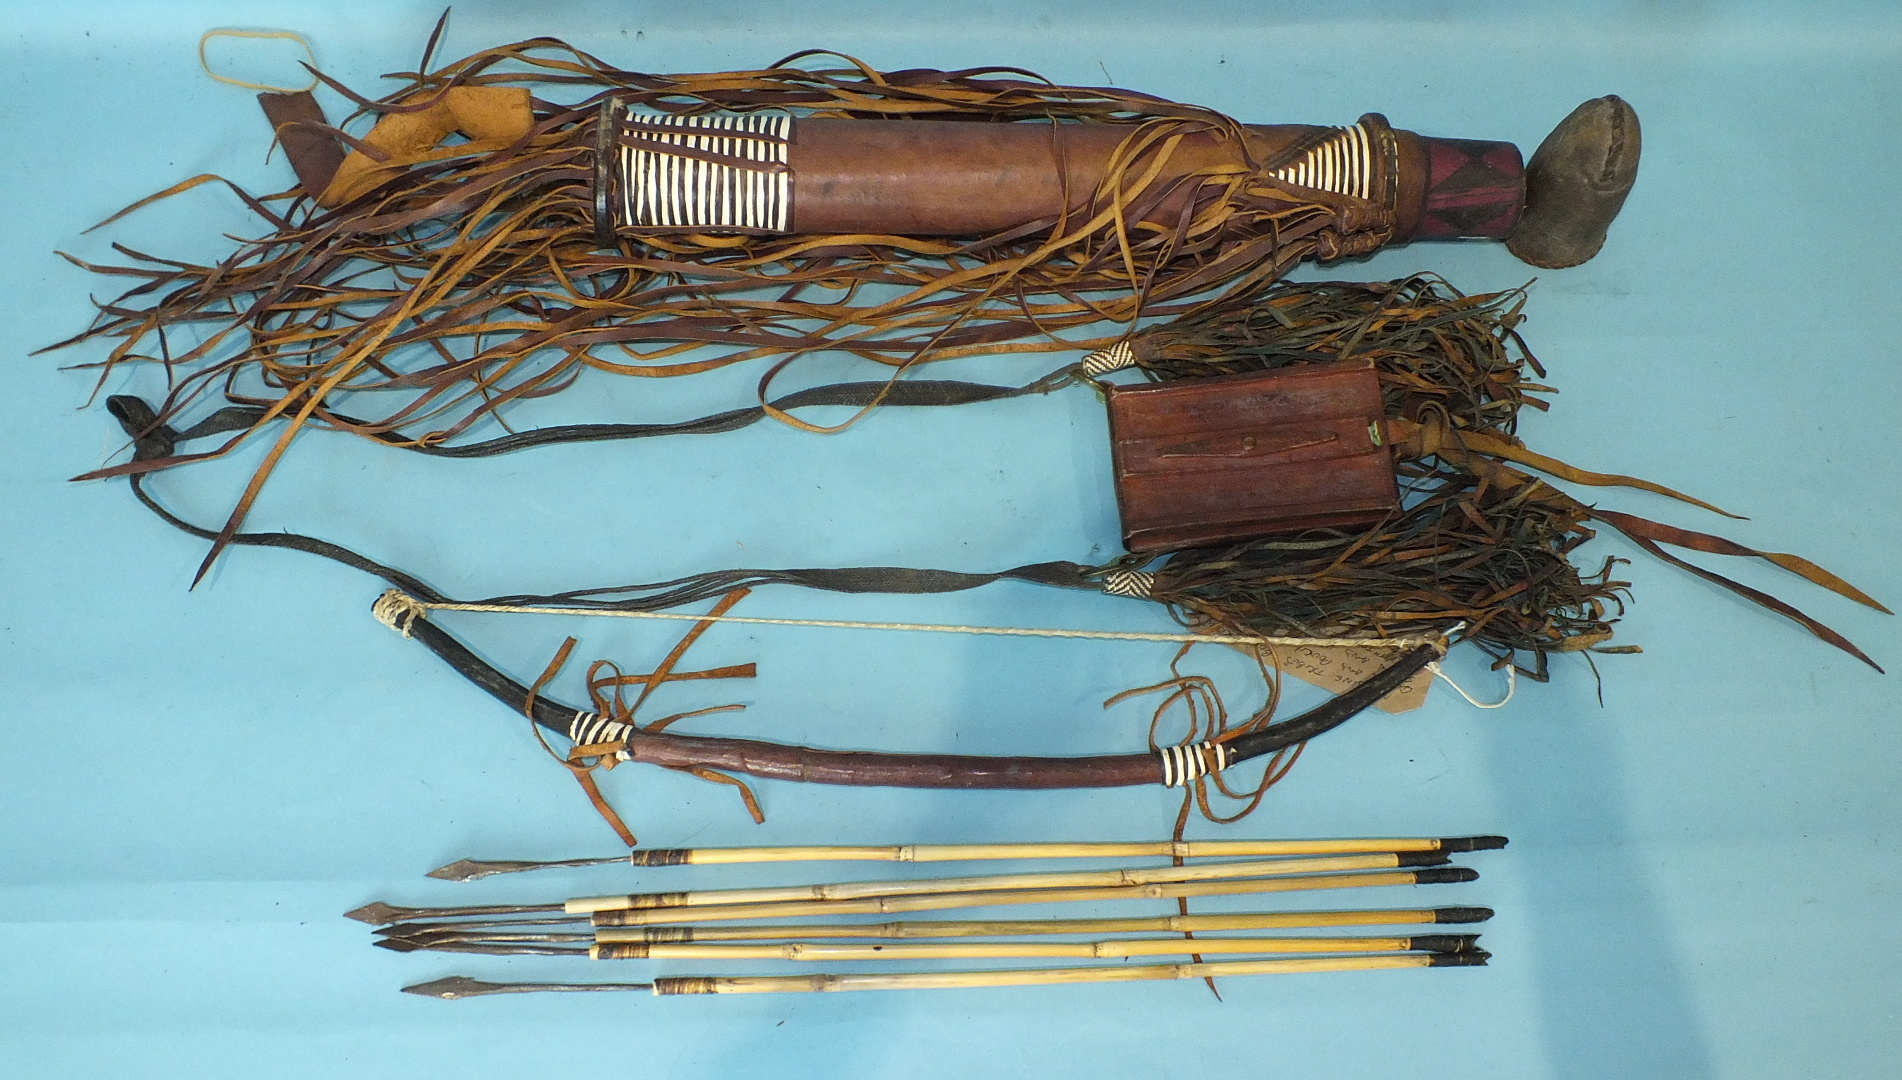 Lot 543 - A 20th century African tribal bow, arrows and pouch constructed of leather.